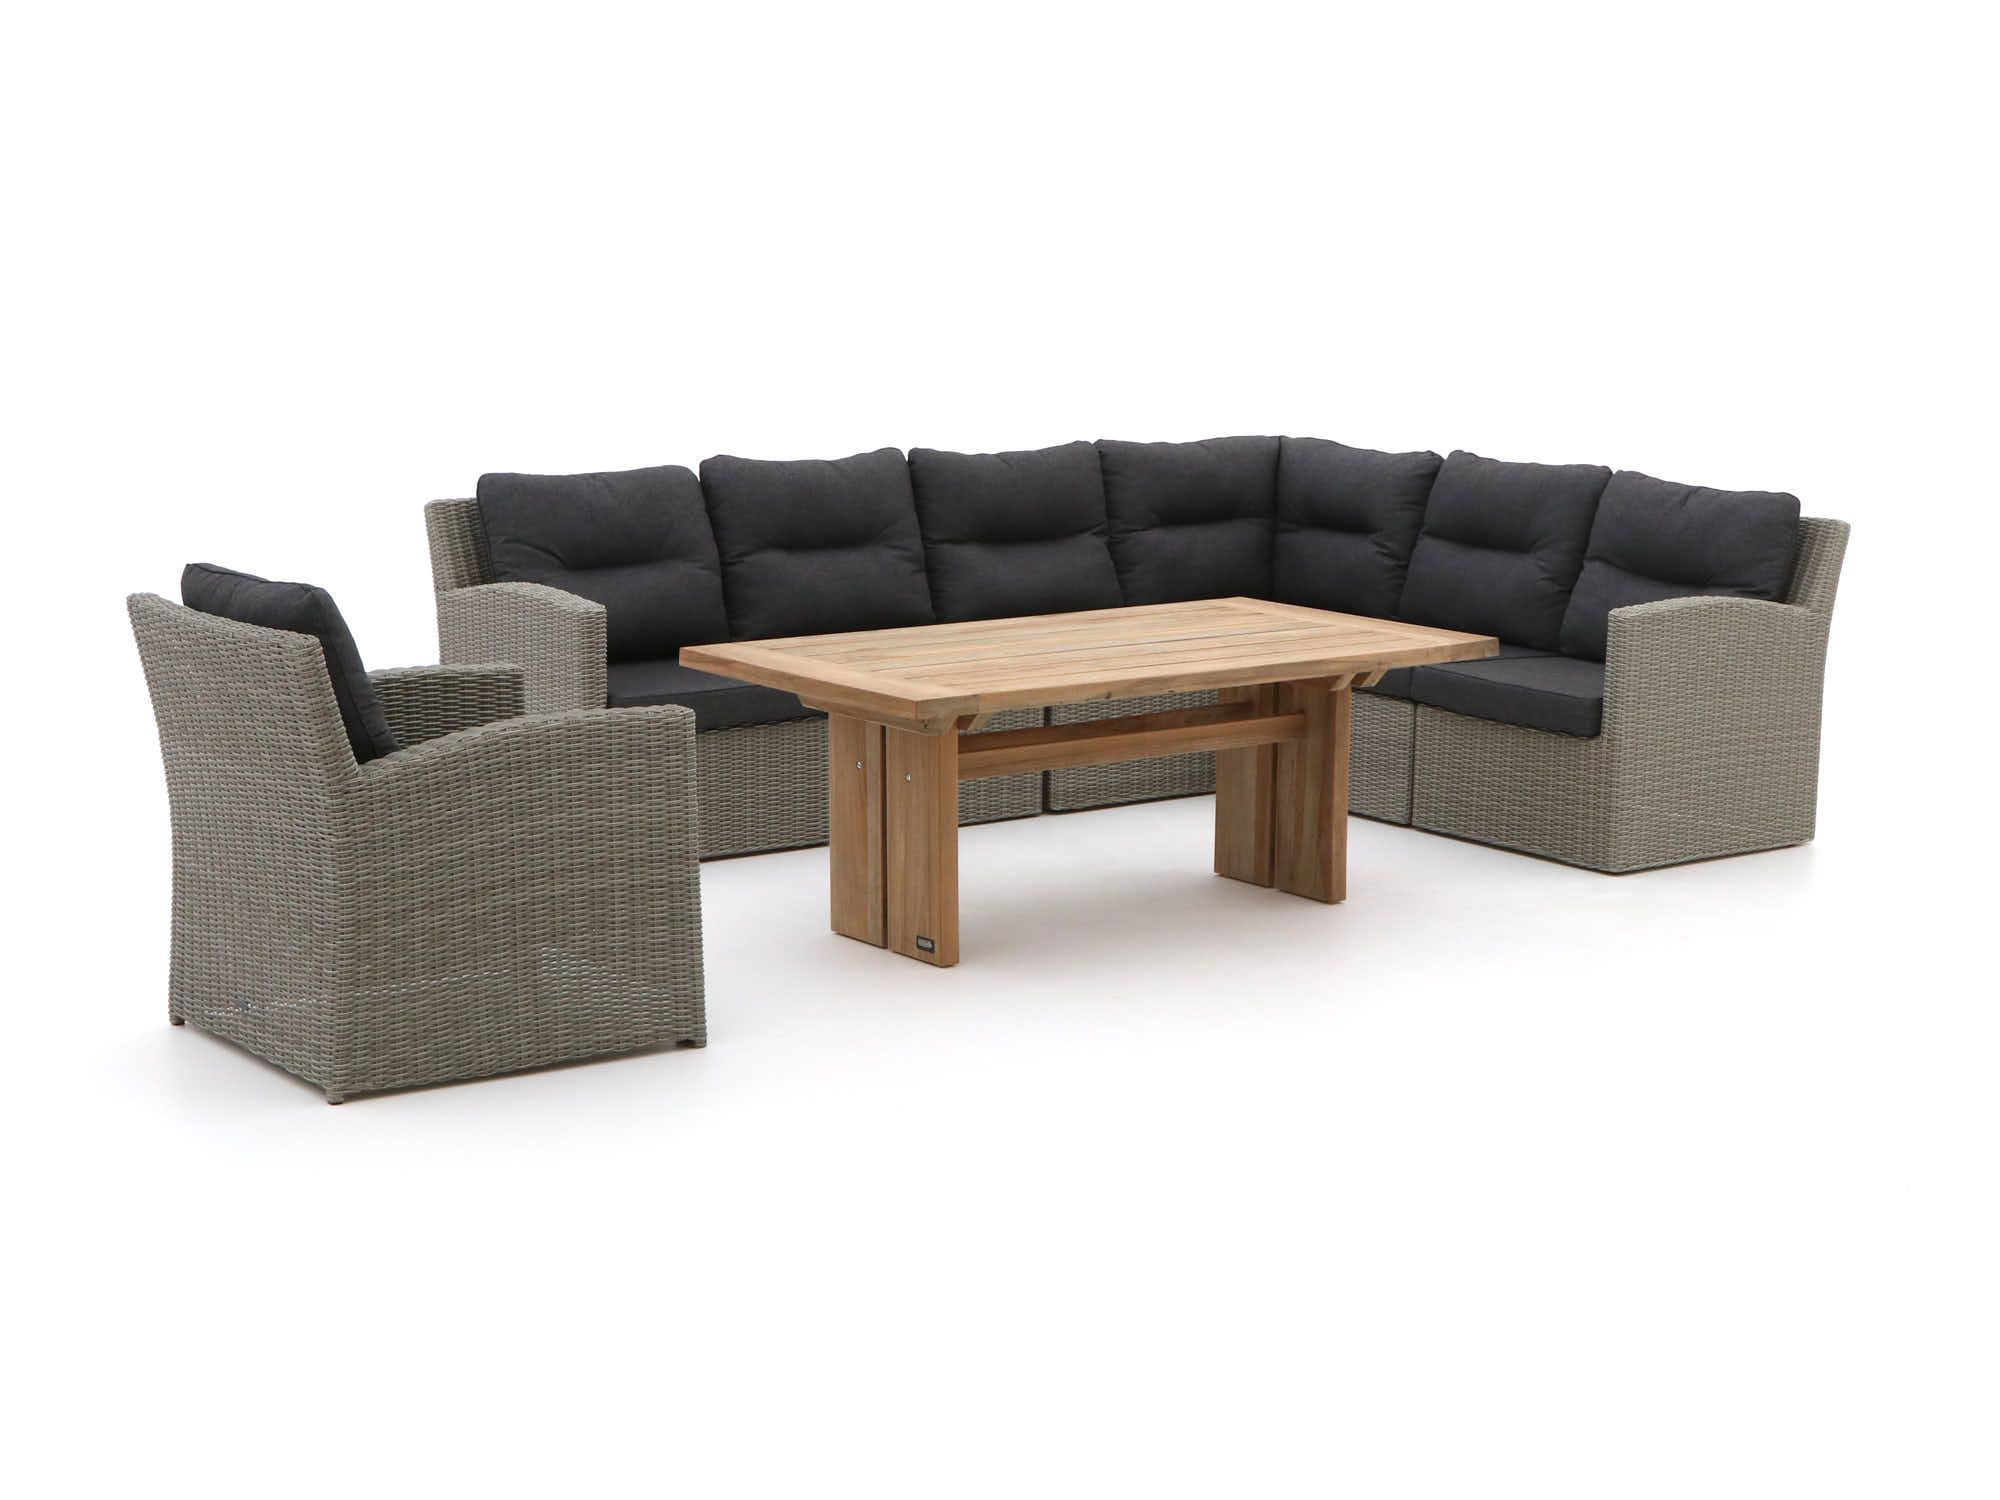 Intenso Fellini Rough L Esstisch Lounge Set 8 Teilig Gartenmobel Lounge Mobel Haus Deko